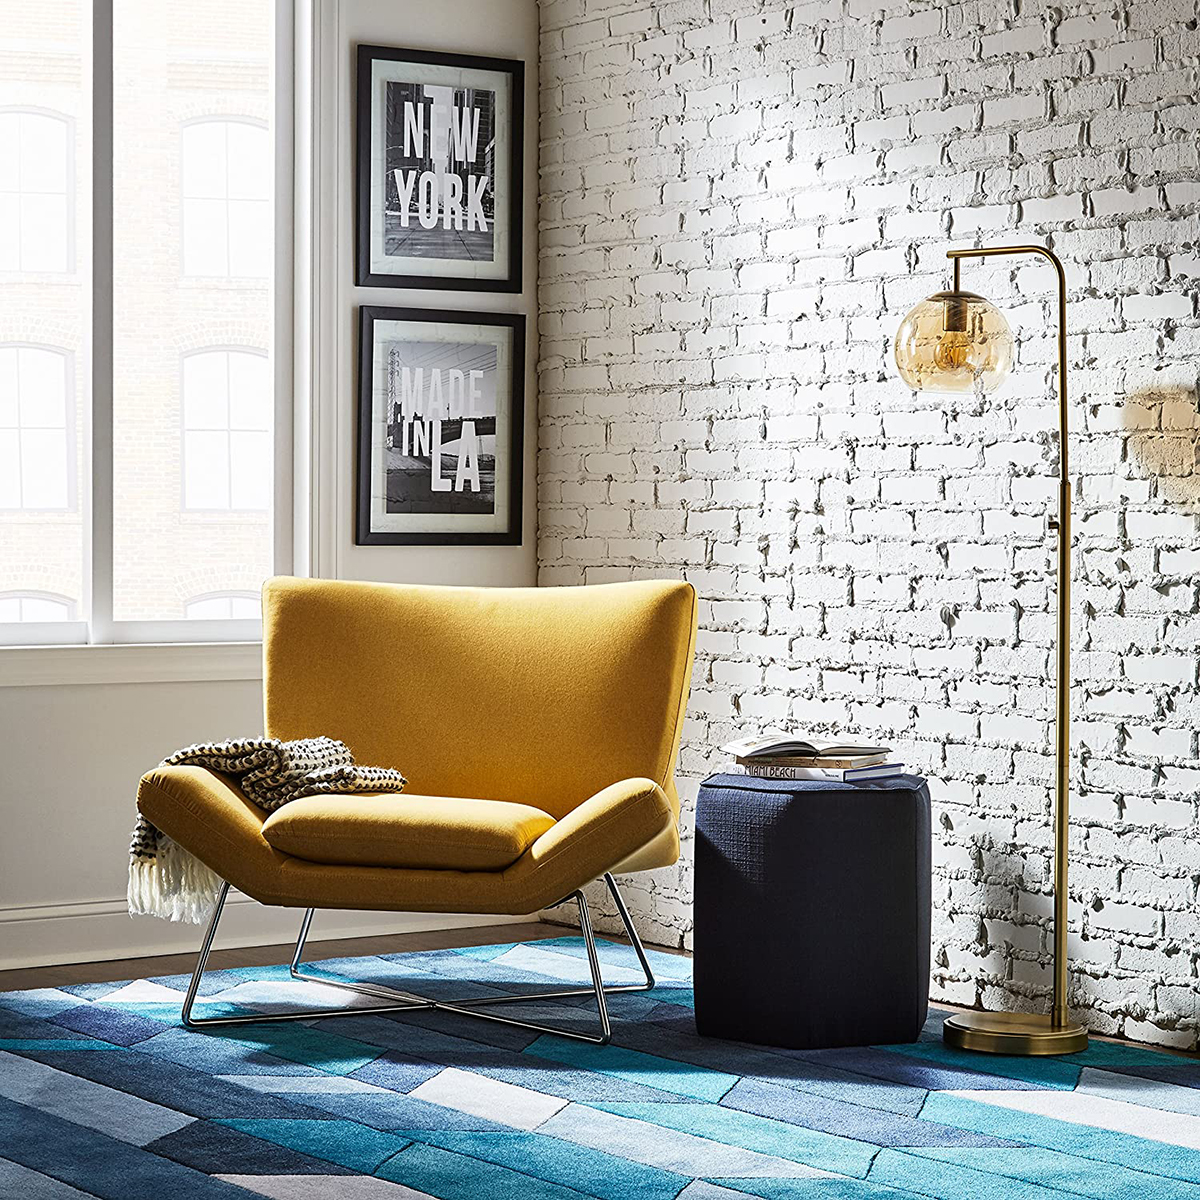 51 Oversized Chairs That Make The Case, Extra Large Living Room Chairs